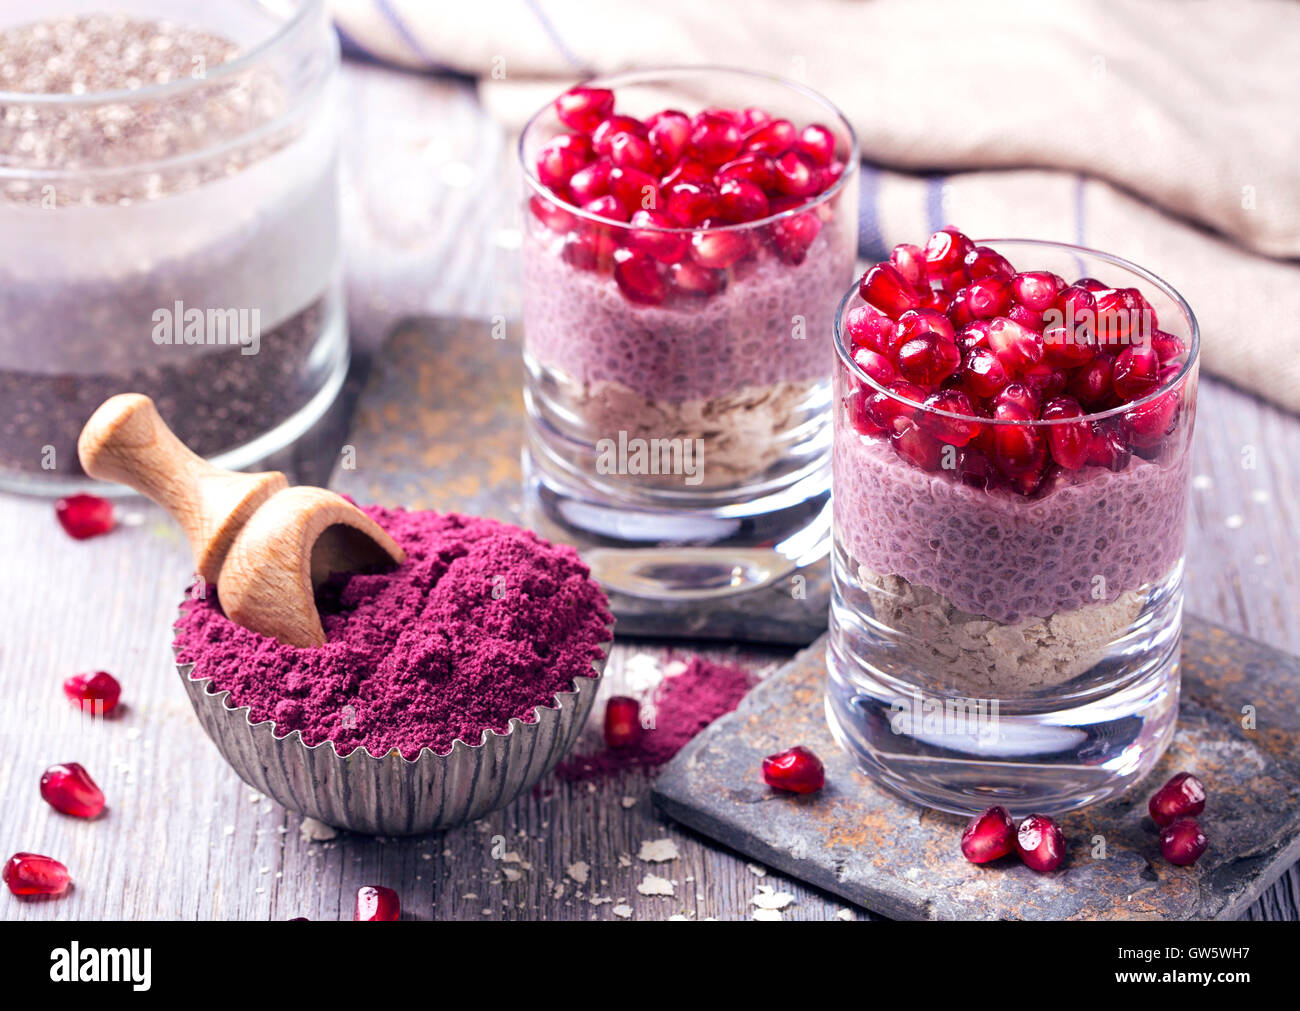 Chia seeds acai pudding with pomegranate - Stock Image